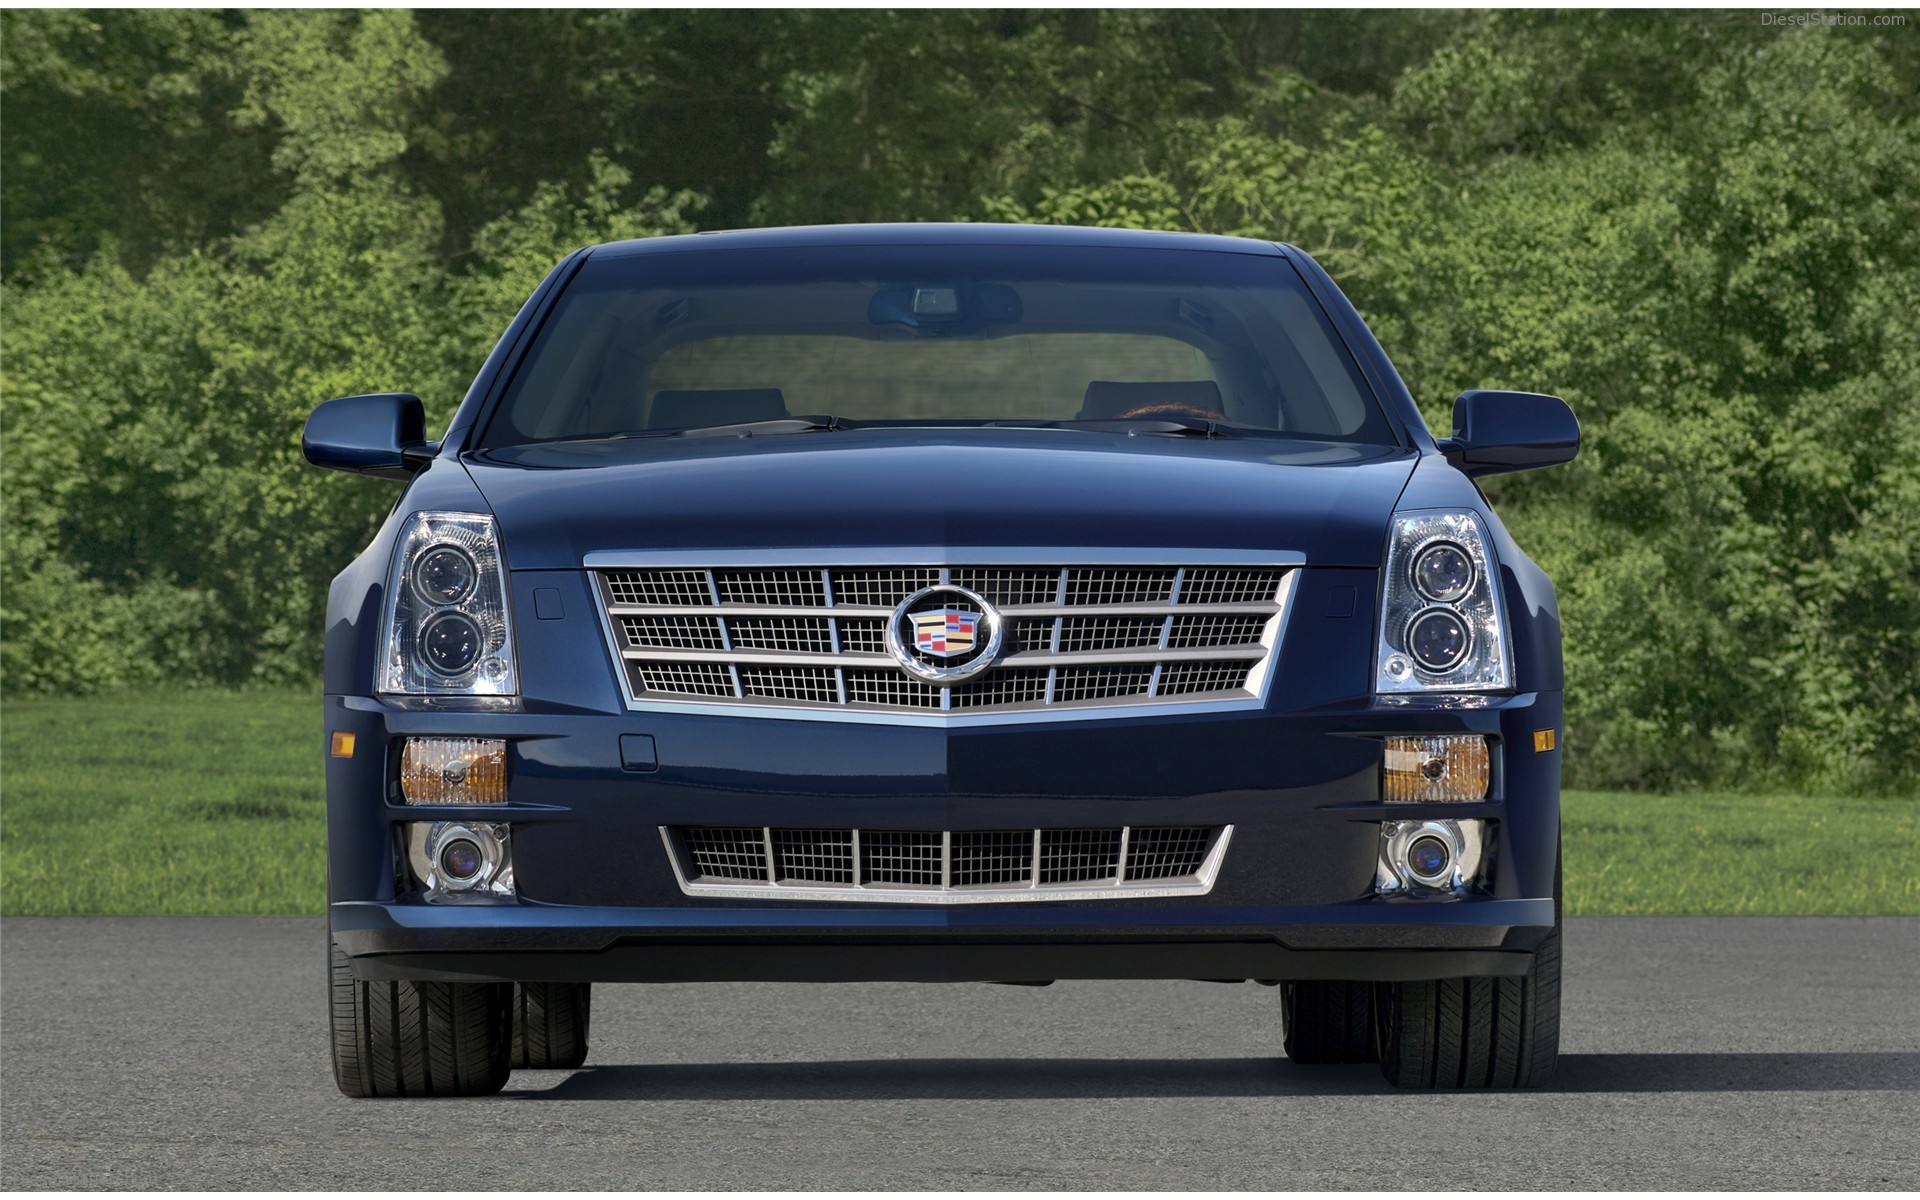 sts cars cargurus luxury overview cadillac performance pic